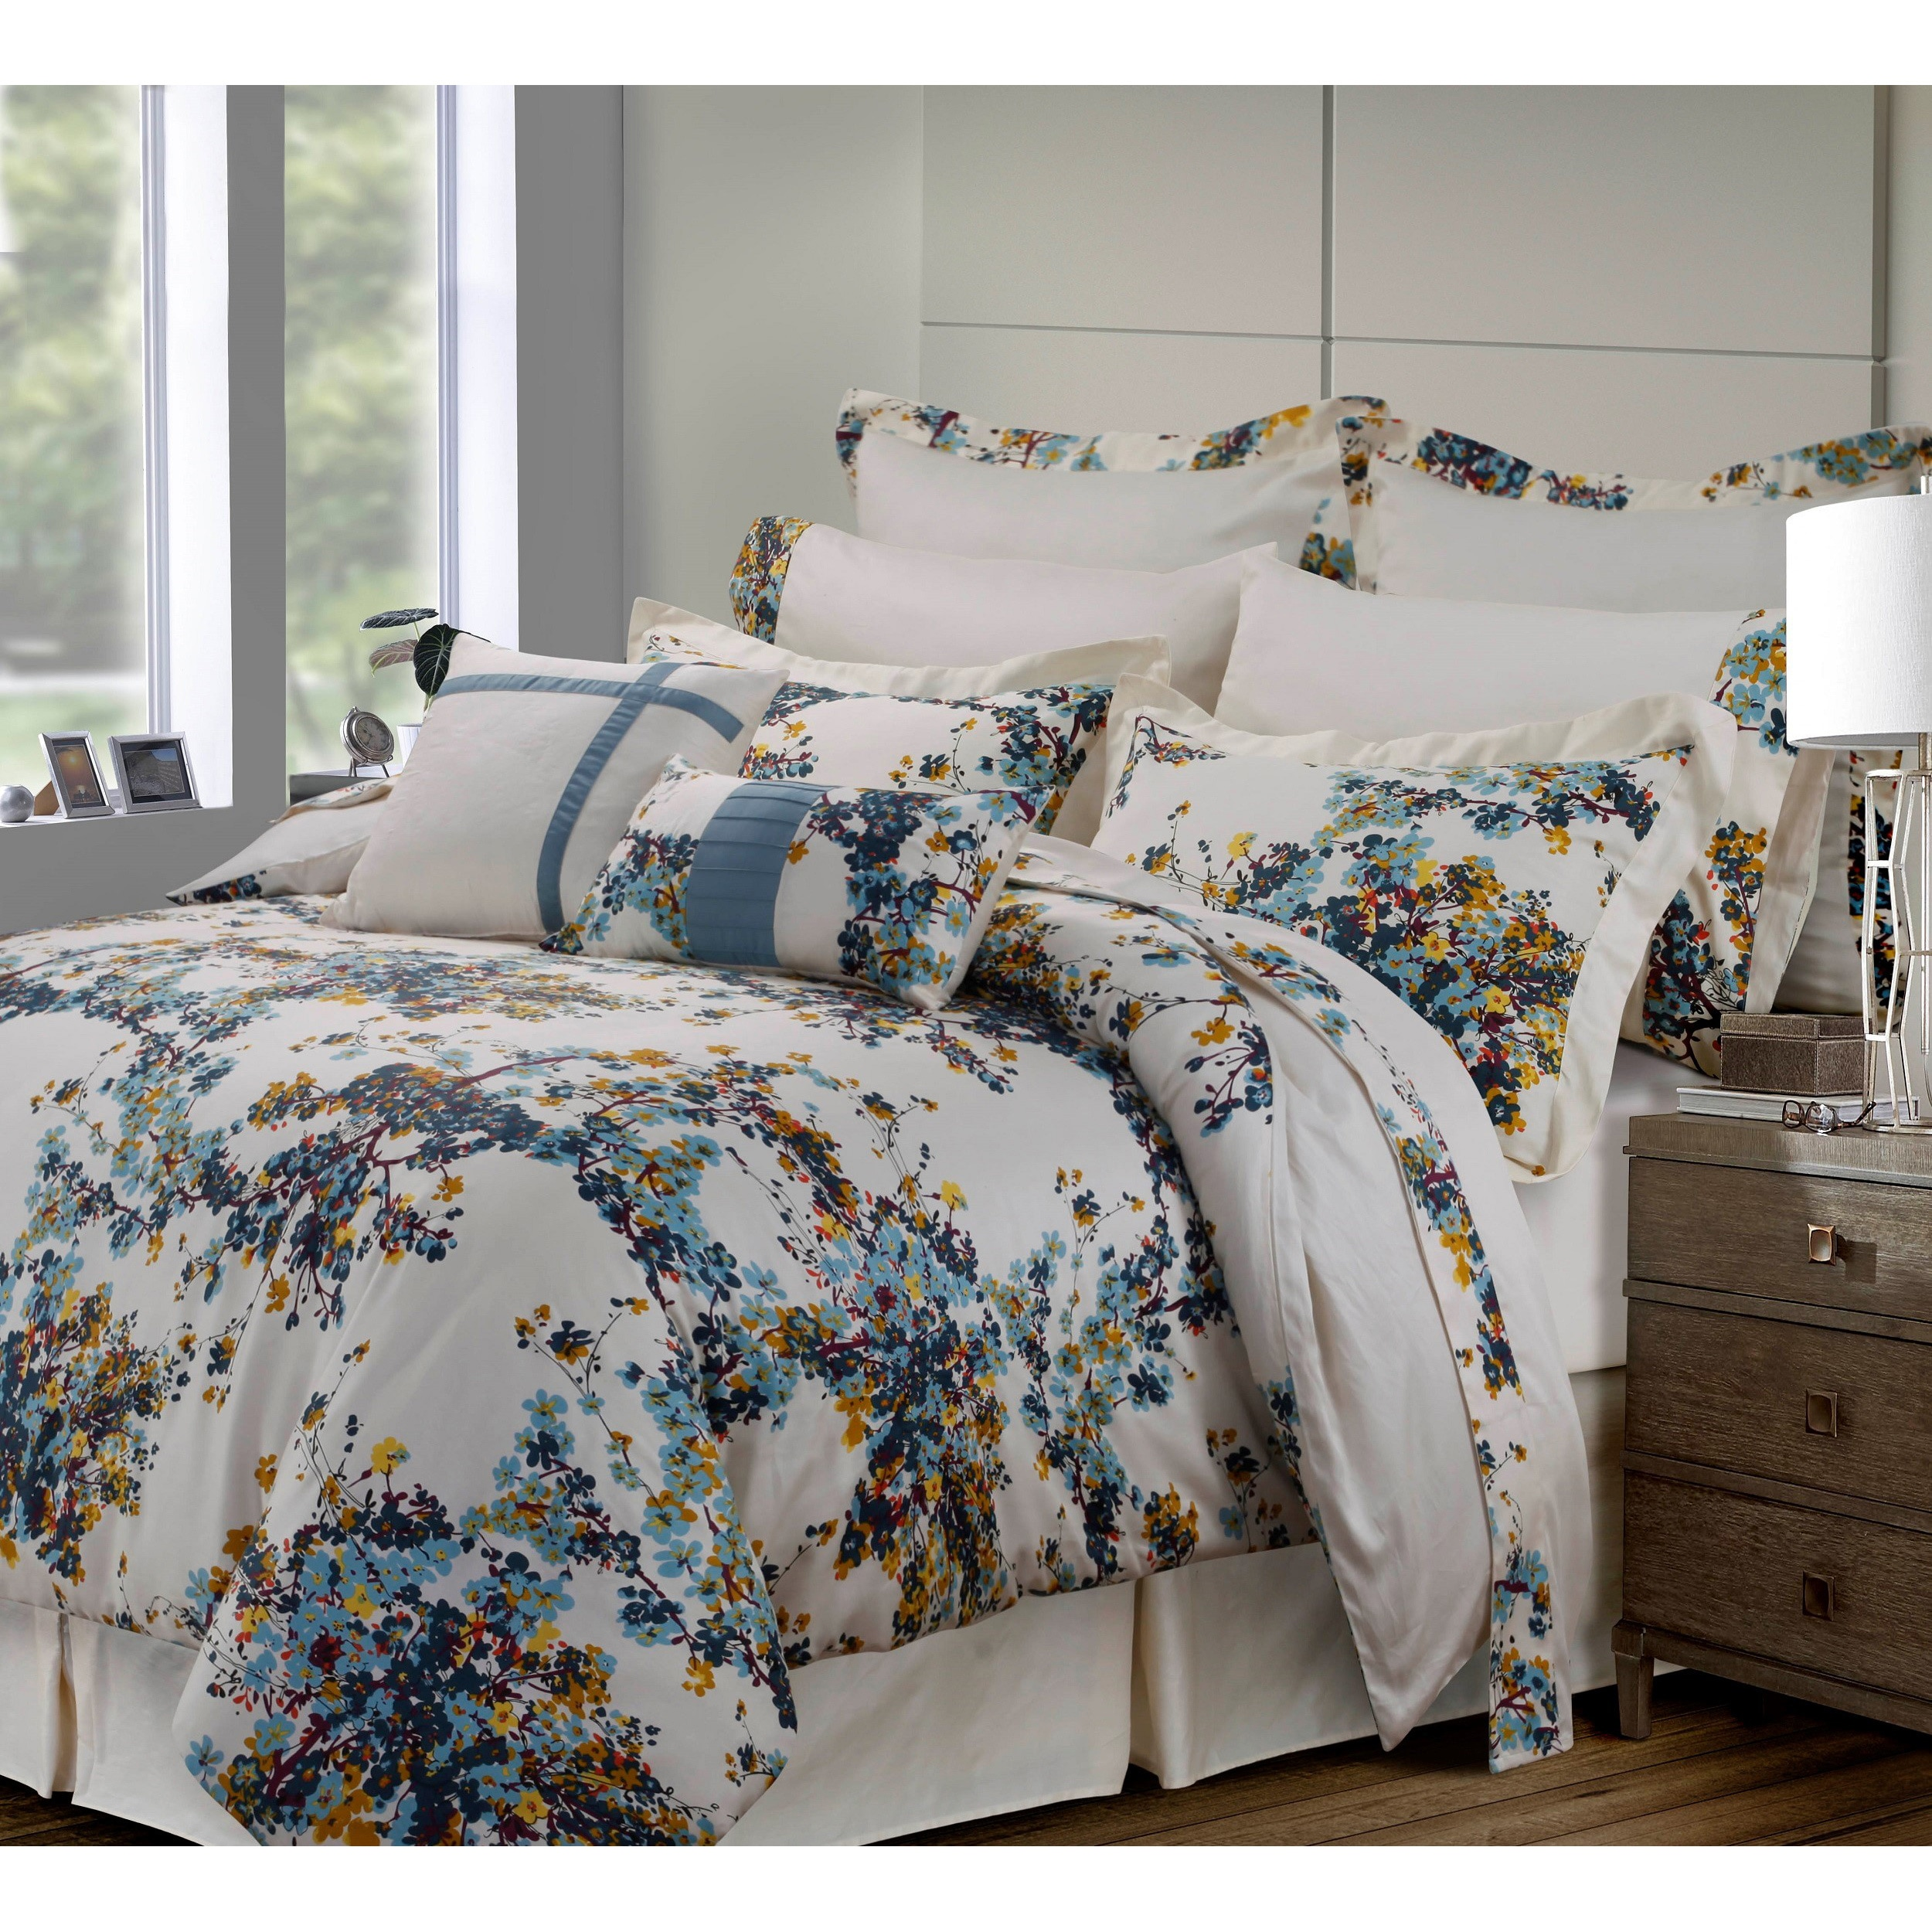 Casablanca Cotton 12 Piece Bed In A Bag With Deep Pocket Sheet Set On Sale Overstock 11686581